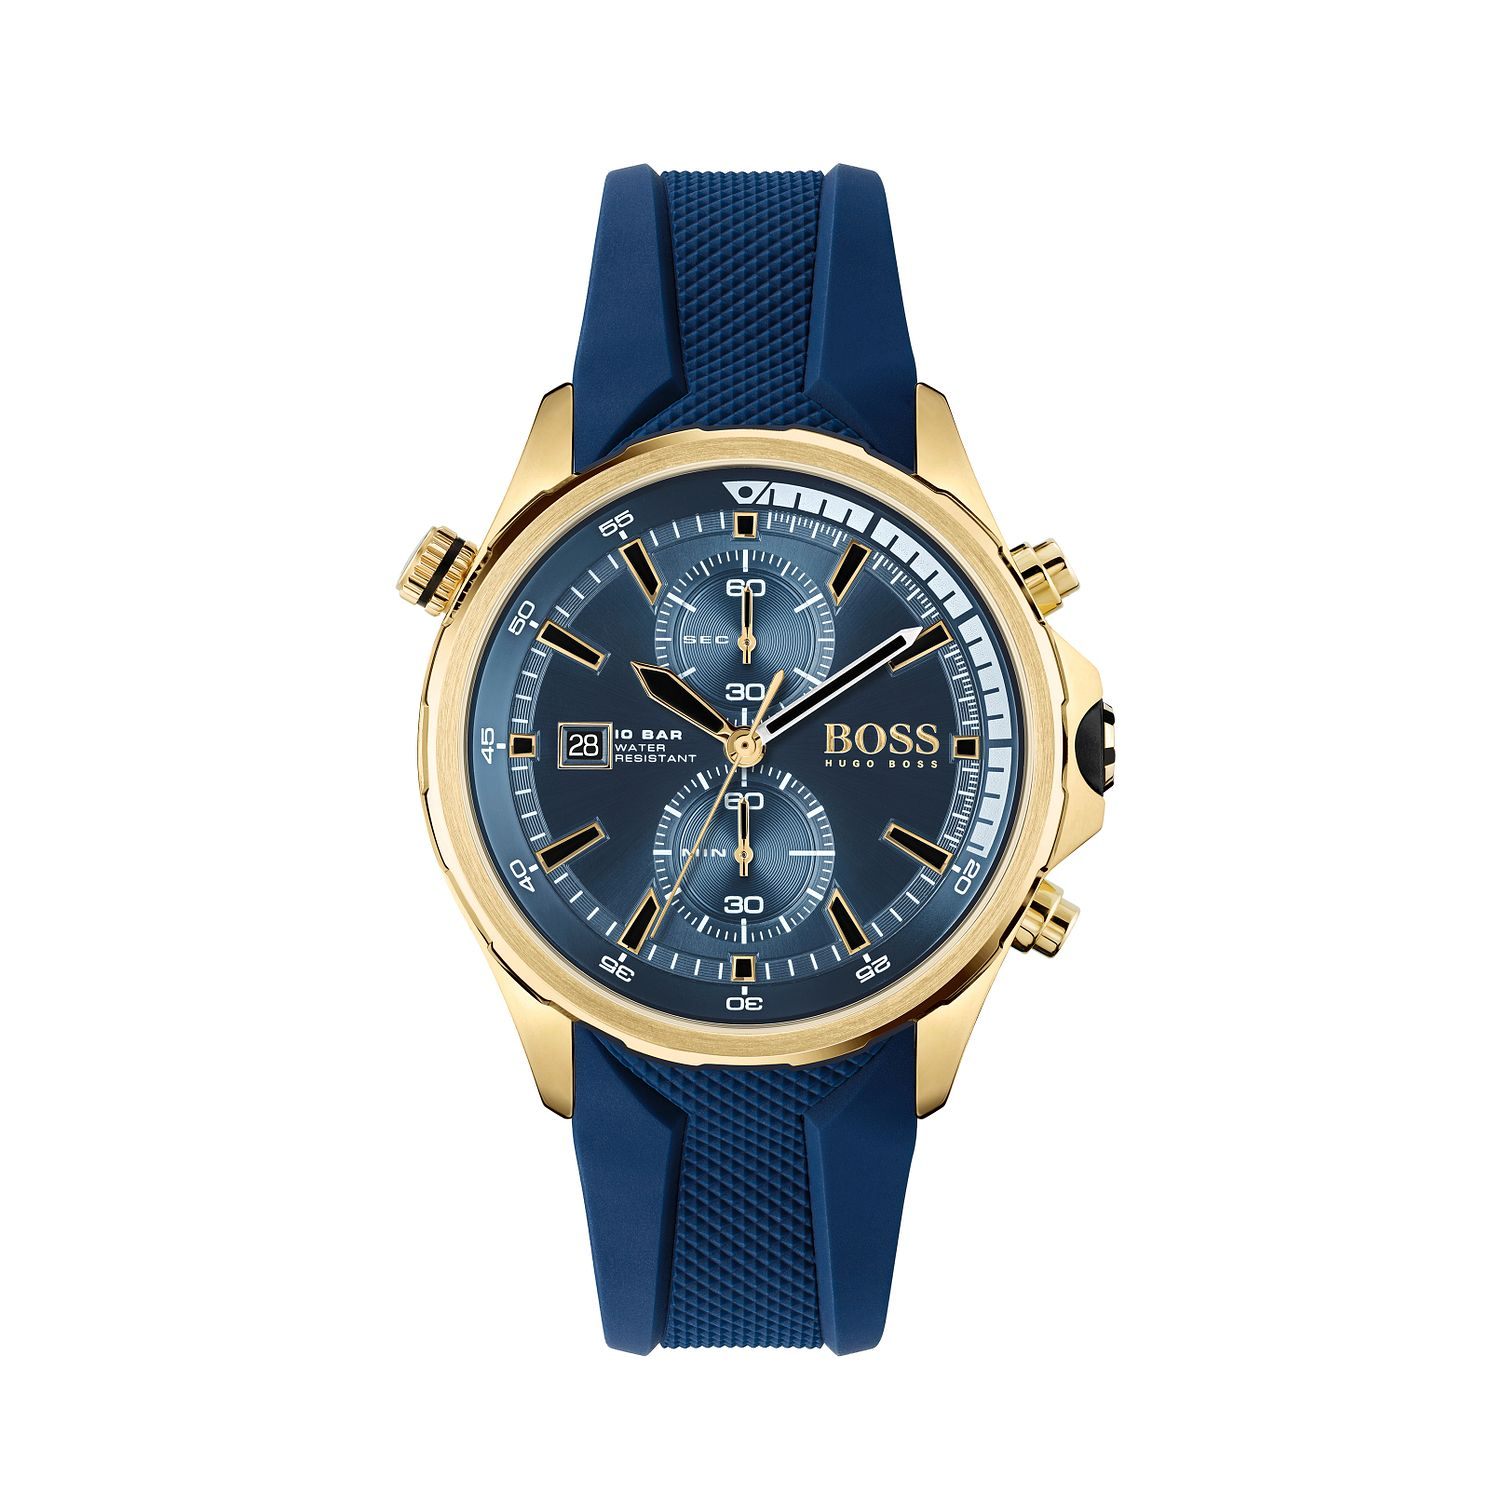 BOSS Globetrotter Men's Blue Silicone Strap Watch - Product number 3849430